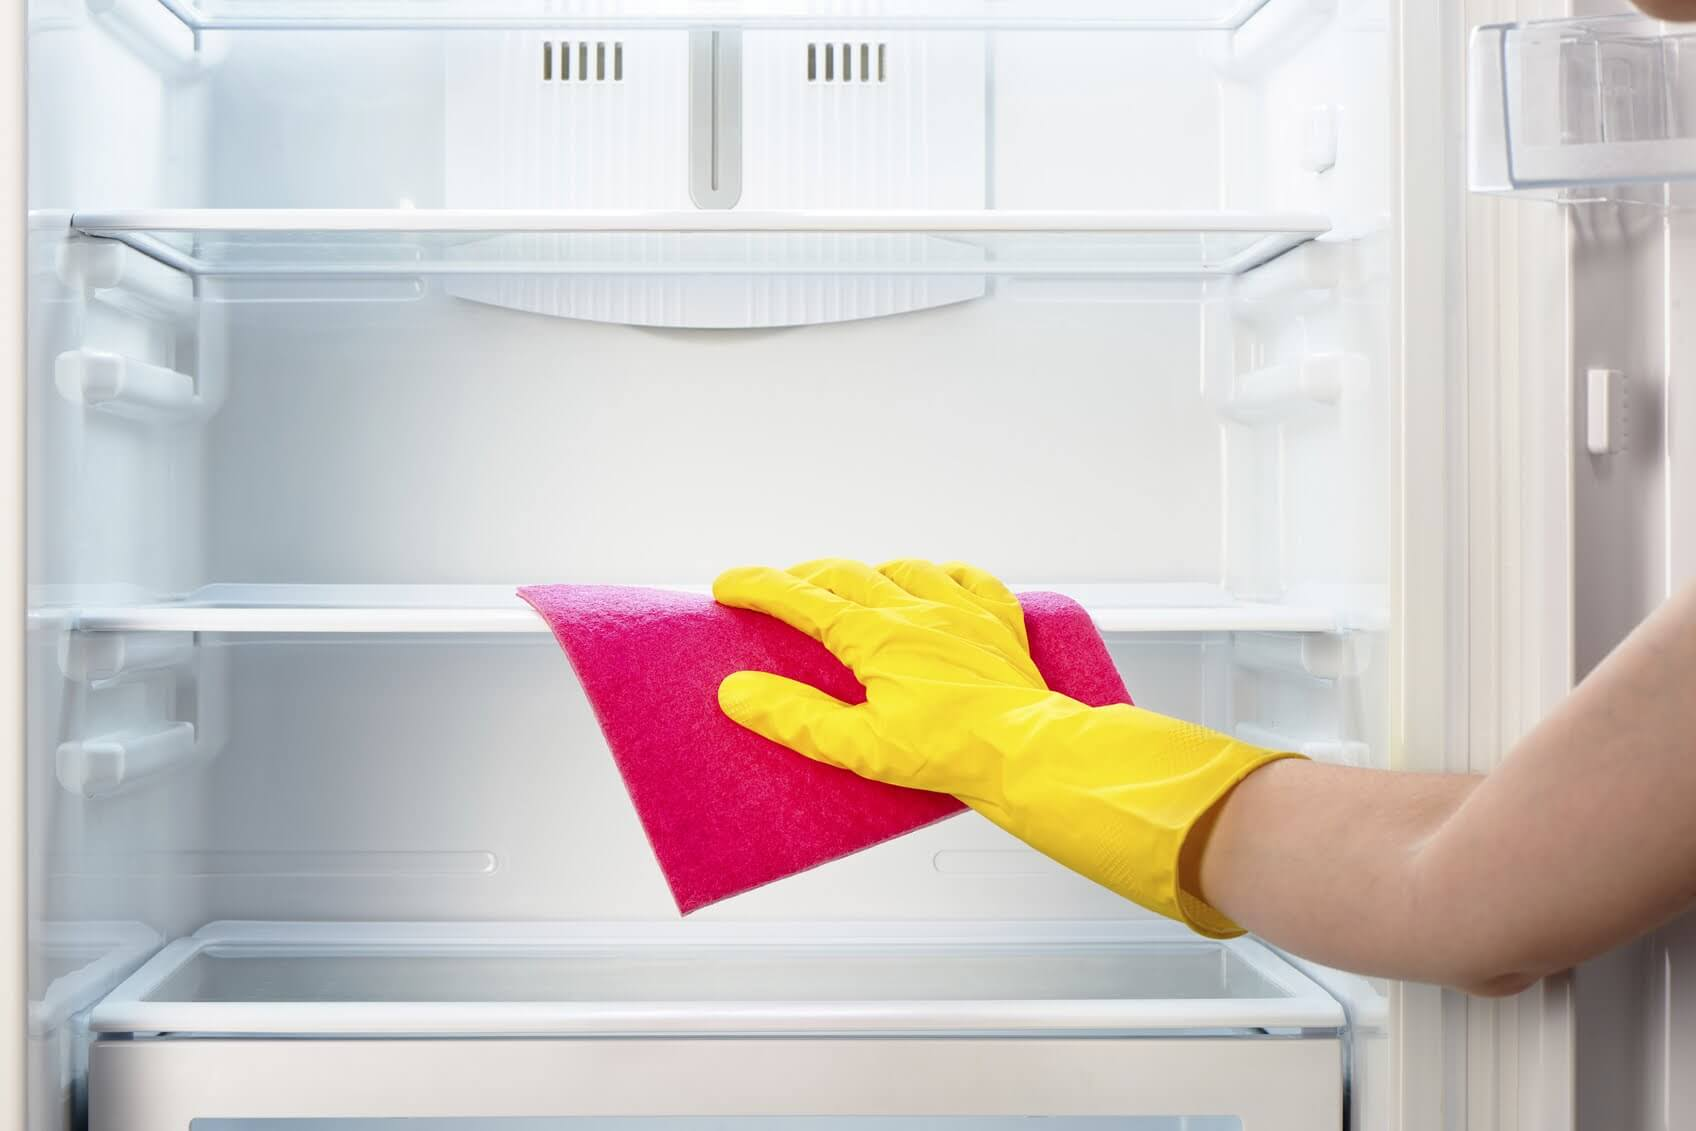 What to do if mold appeared in your fridge?